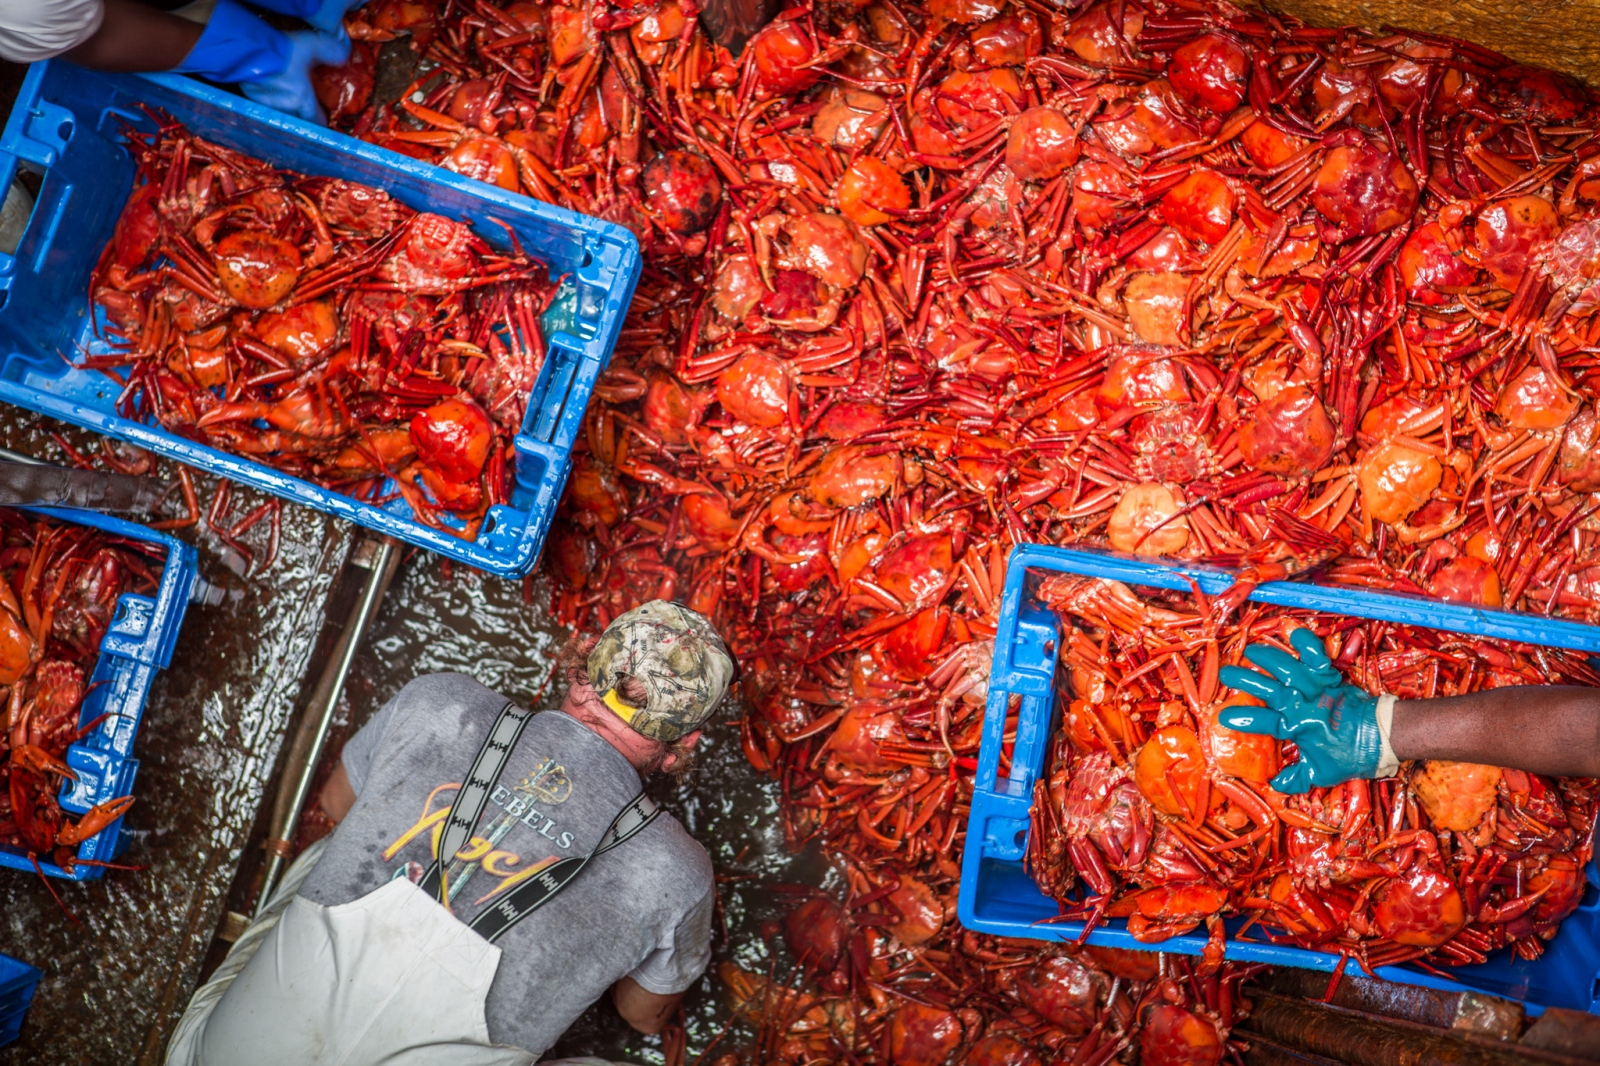 Atlantic Red Crab. From an assignment for Nature Conservancy on the economic importance and cultural depth of fisheries on the mid-Atlantic coast, USA.